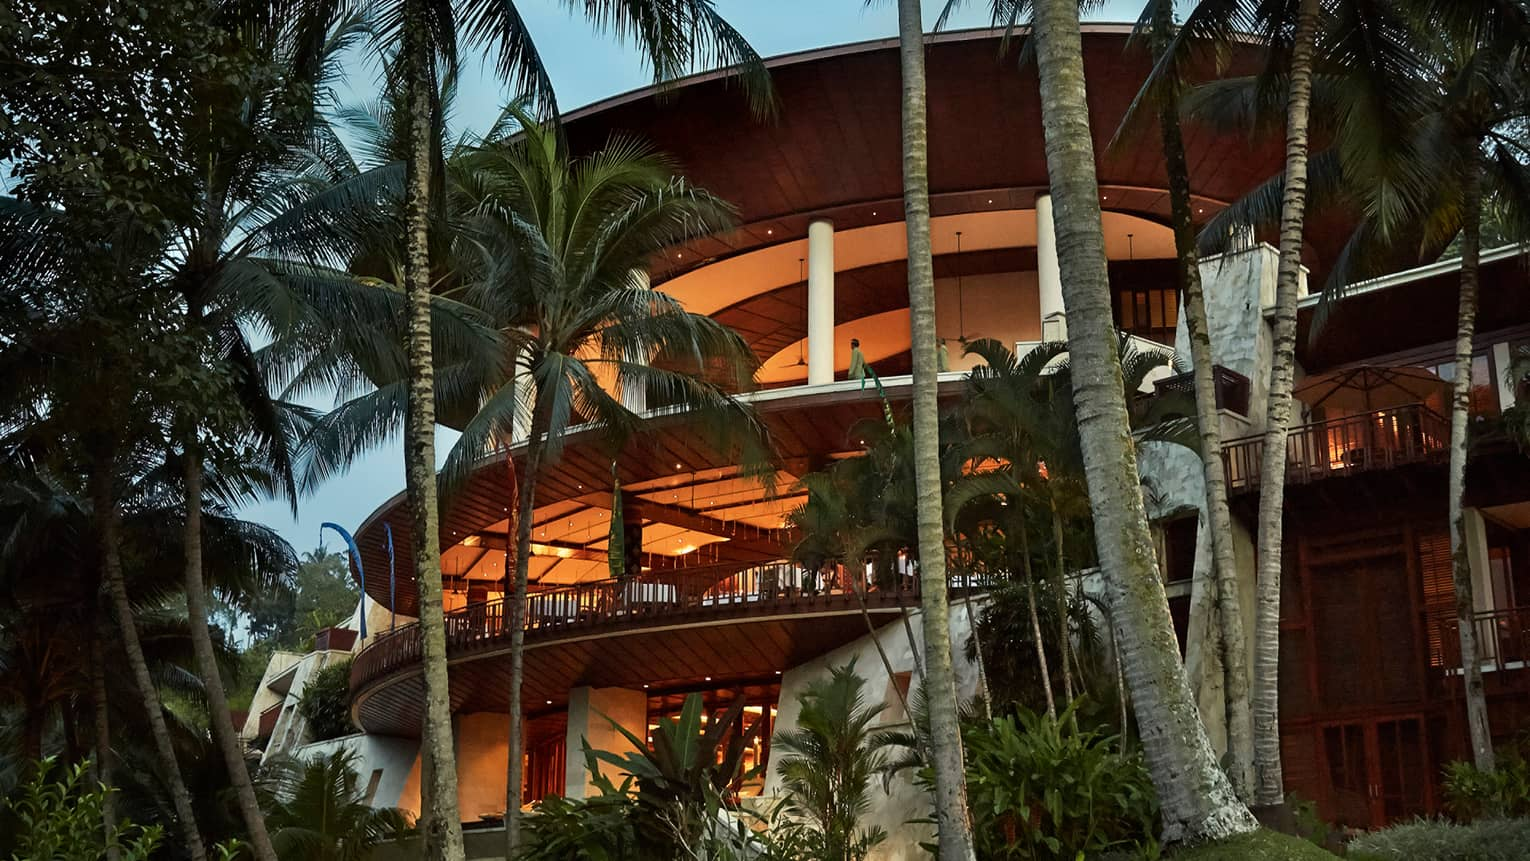 Four-storey curved balconies around resort building at dusk, lit with orange lights, surrounded by palms